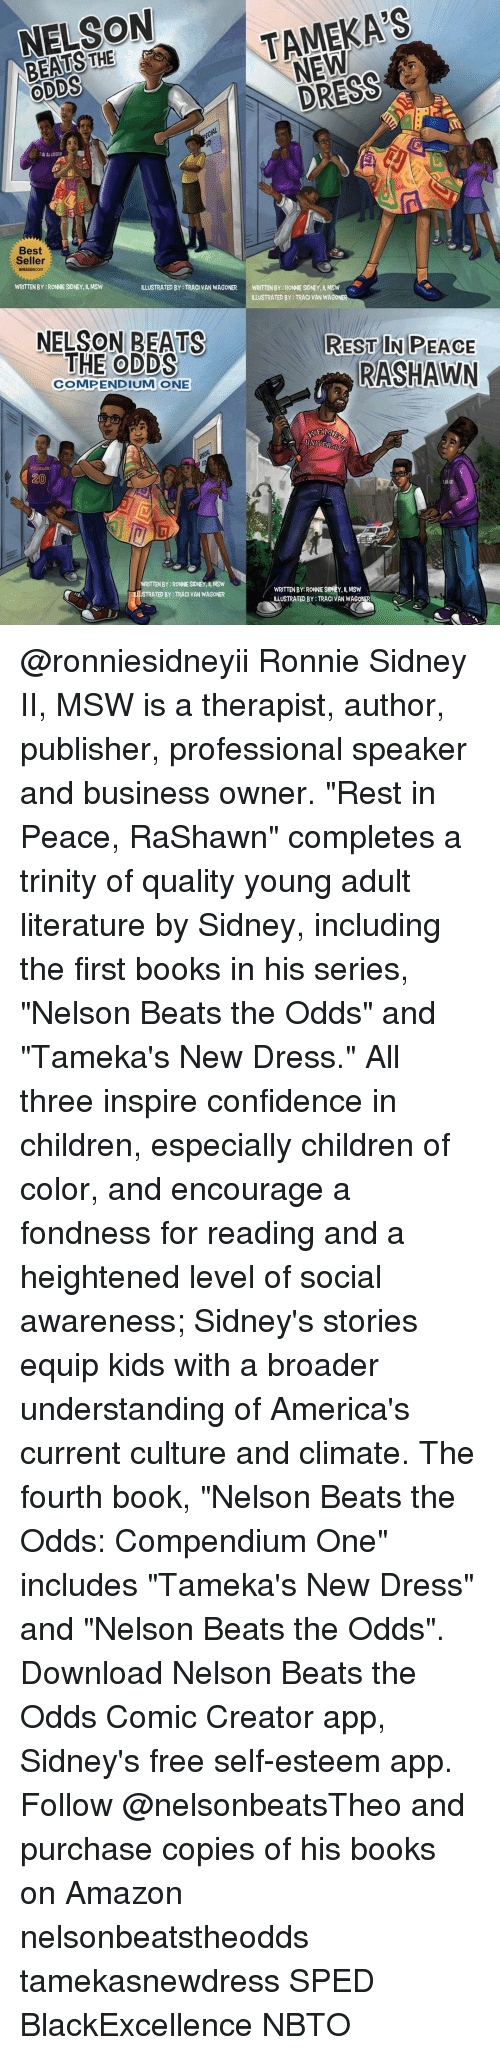 """Fonded: NELSON  NEW  a ODDS  Best  Seller  WRITTEN BY RONNE SDNEY, MSW  ILLUSTRATED BY TRACI VAN WAGONER  WRITTENBY:RONNESIDNEY, ll, MSW  ILLUSTRATED BY: TRACI VAN WAGO  NELSON BEATS  REST IN PEACE  THE ODDS  RASHAWN  COMPENDIUM ONE  KE  UNIVERSITY  ITTENBY RONNESDNEY, MSW  WRITTEN BY: RONNE SIONEY, MSW  TRATED BY TRACI VAN WAGONER  ILLUSTRATED BY:TRACI VAN WAG @ronniesidneyii Ronnie Sidney II, MSW is a therapist, author, publisher, professional speaker and business owner. """"Rest in Peace, RaShawn"""" completes a trinity of quality young adult literature by Sidney, including the first books in his series, """"Nelson Beats the Odds"""" and """"Tameka's New Dress."""" All three inspire confidence in children, especially children of color, and encourage a fondness for reading and a heightened level of social awareness; Sidney's stories equip kids with a broader understanding of America's current culture and climate. The fourth book, """"Nelson Beats the Odds: Compendium One"""" includes """"Tameka's New Dress"""" and """"Nelson Beats the Odds"""". Download Nelson Beats the Odds Comic Creator app, Sidney's free self-esteem app. Follow @nelsonbeatsTheo and purchase copies of his books on Amazon nelsonbeatstheodds tamekasnewdress SPED BlackExcellence NBTO"""